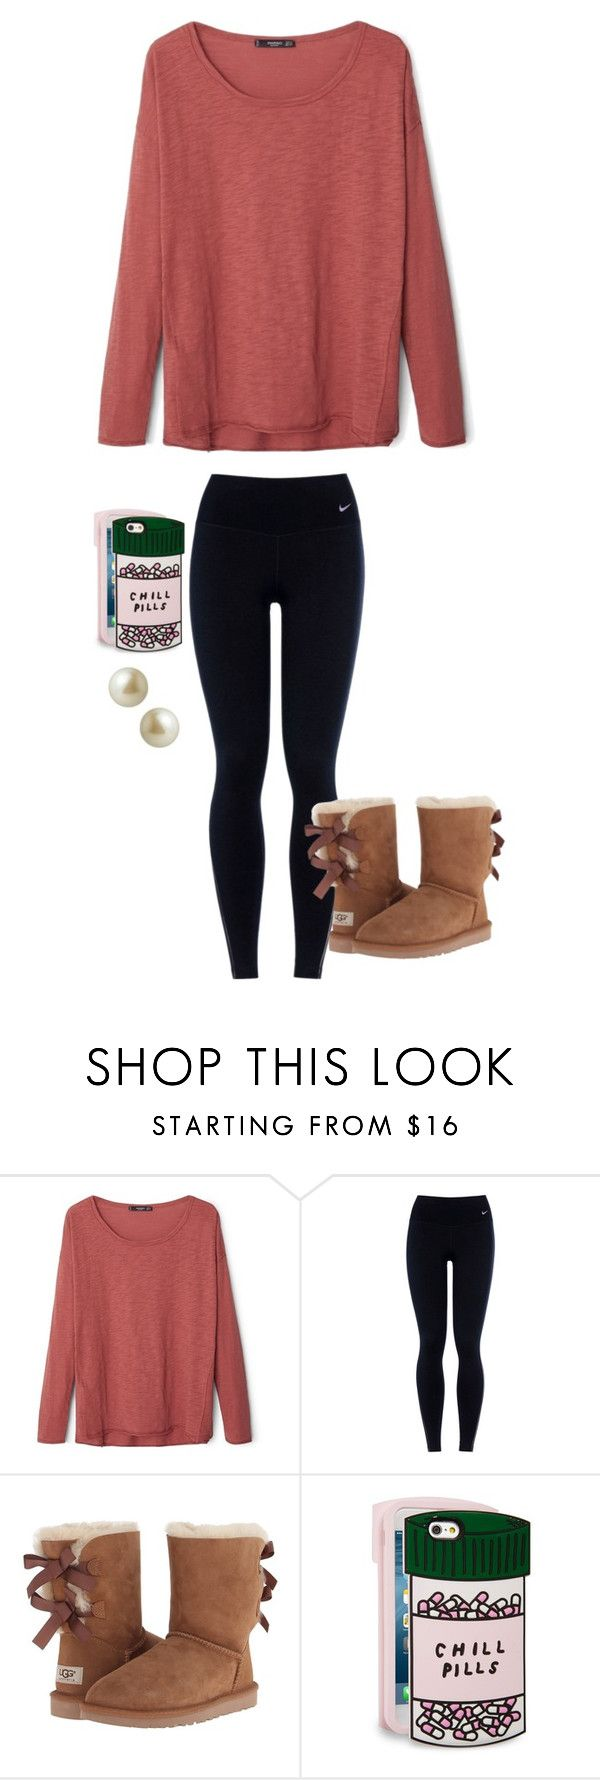 """""""Does anyone have these boots?"""" by avaodom ❤ liked on Polyvore featuring MANGO, NIKE, UGG Australia, ban.do, Carolee, women's clothing, women, female, woman and misses"""